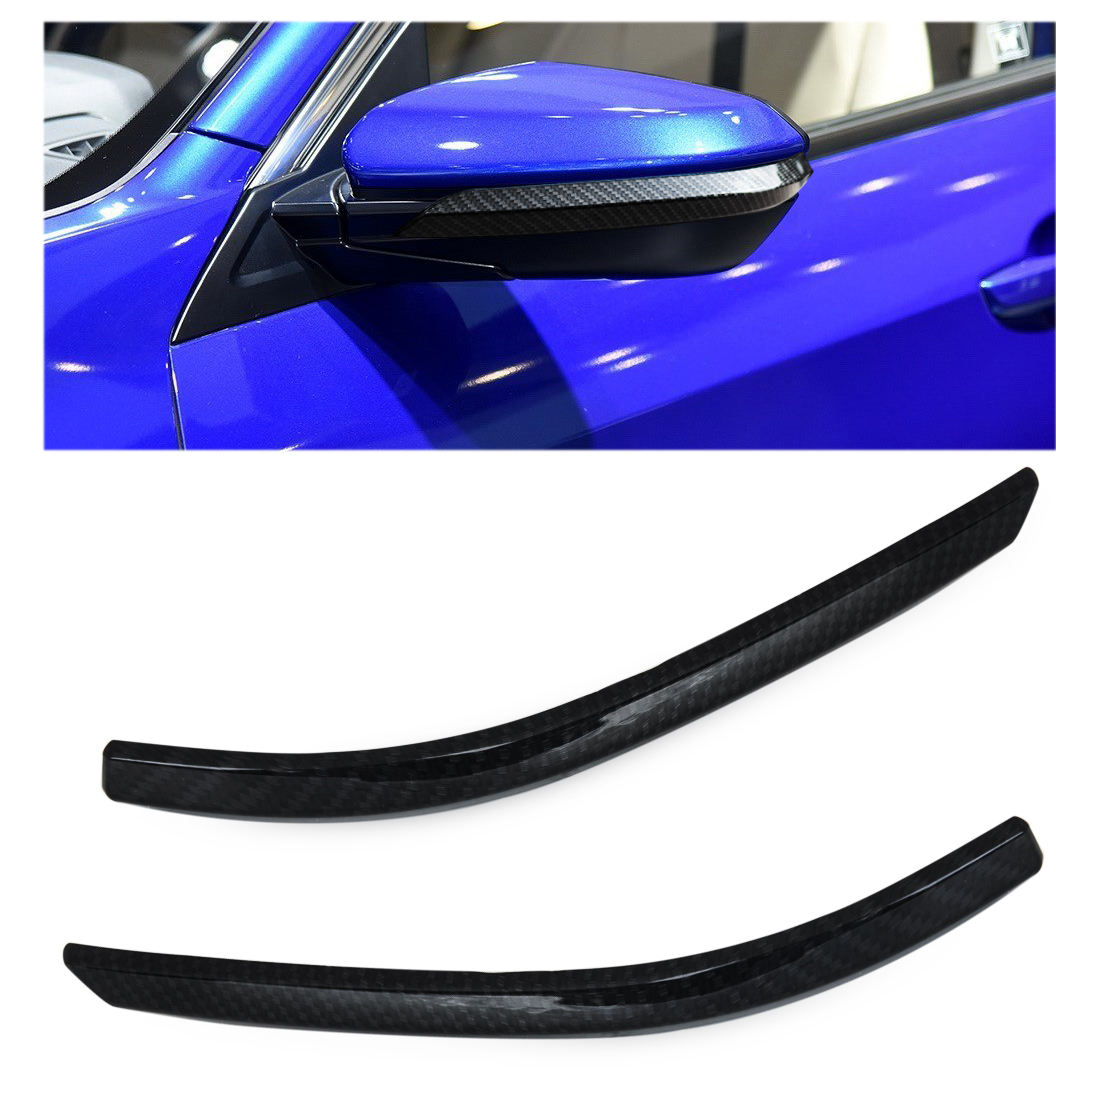 DWCX 2x Left + Right Car Styling Black Carbon Fiber Texture Rearview Side Mirror Strip Cover Trim Fit For Honda Civic 2016 2017 epr car styling for mazda rx7 fc3s carbon fiber triangle glossy fibre interior side accessories racing trim